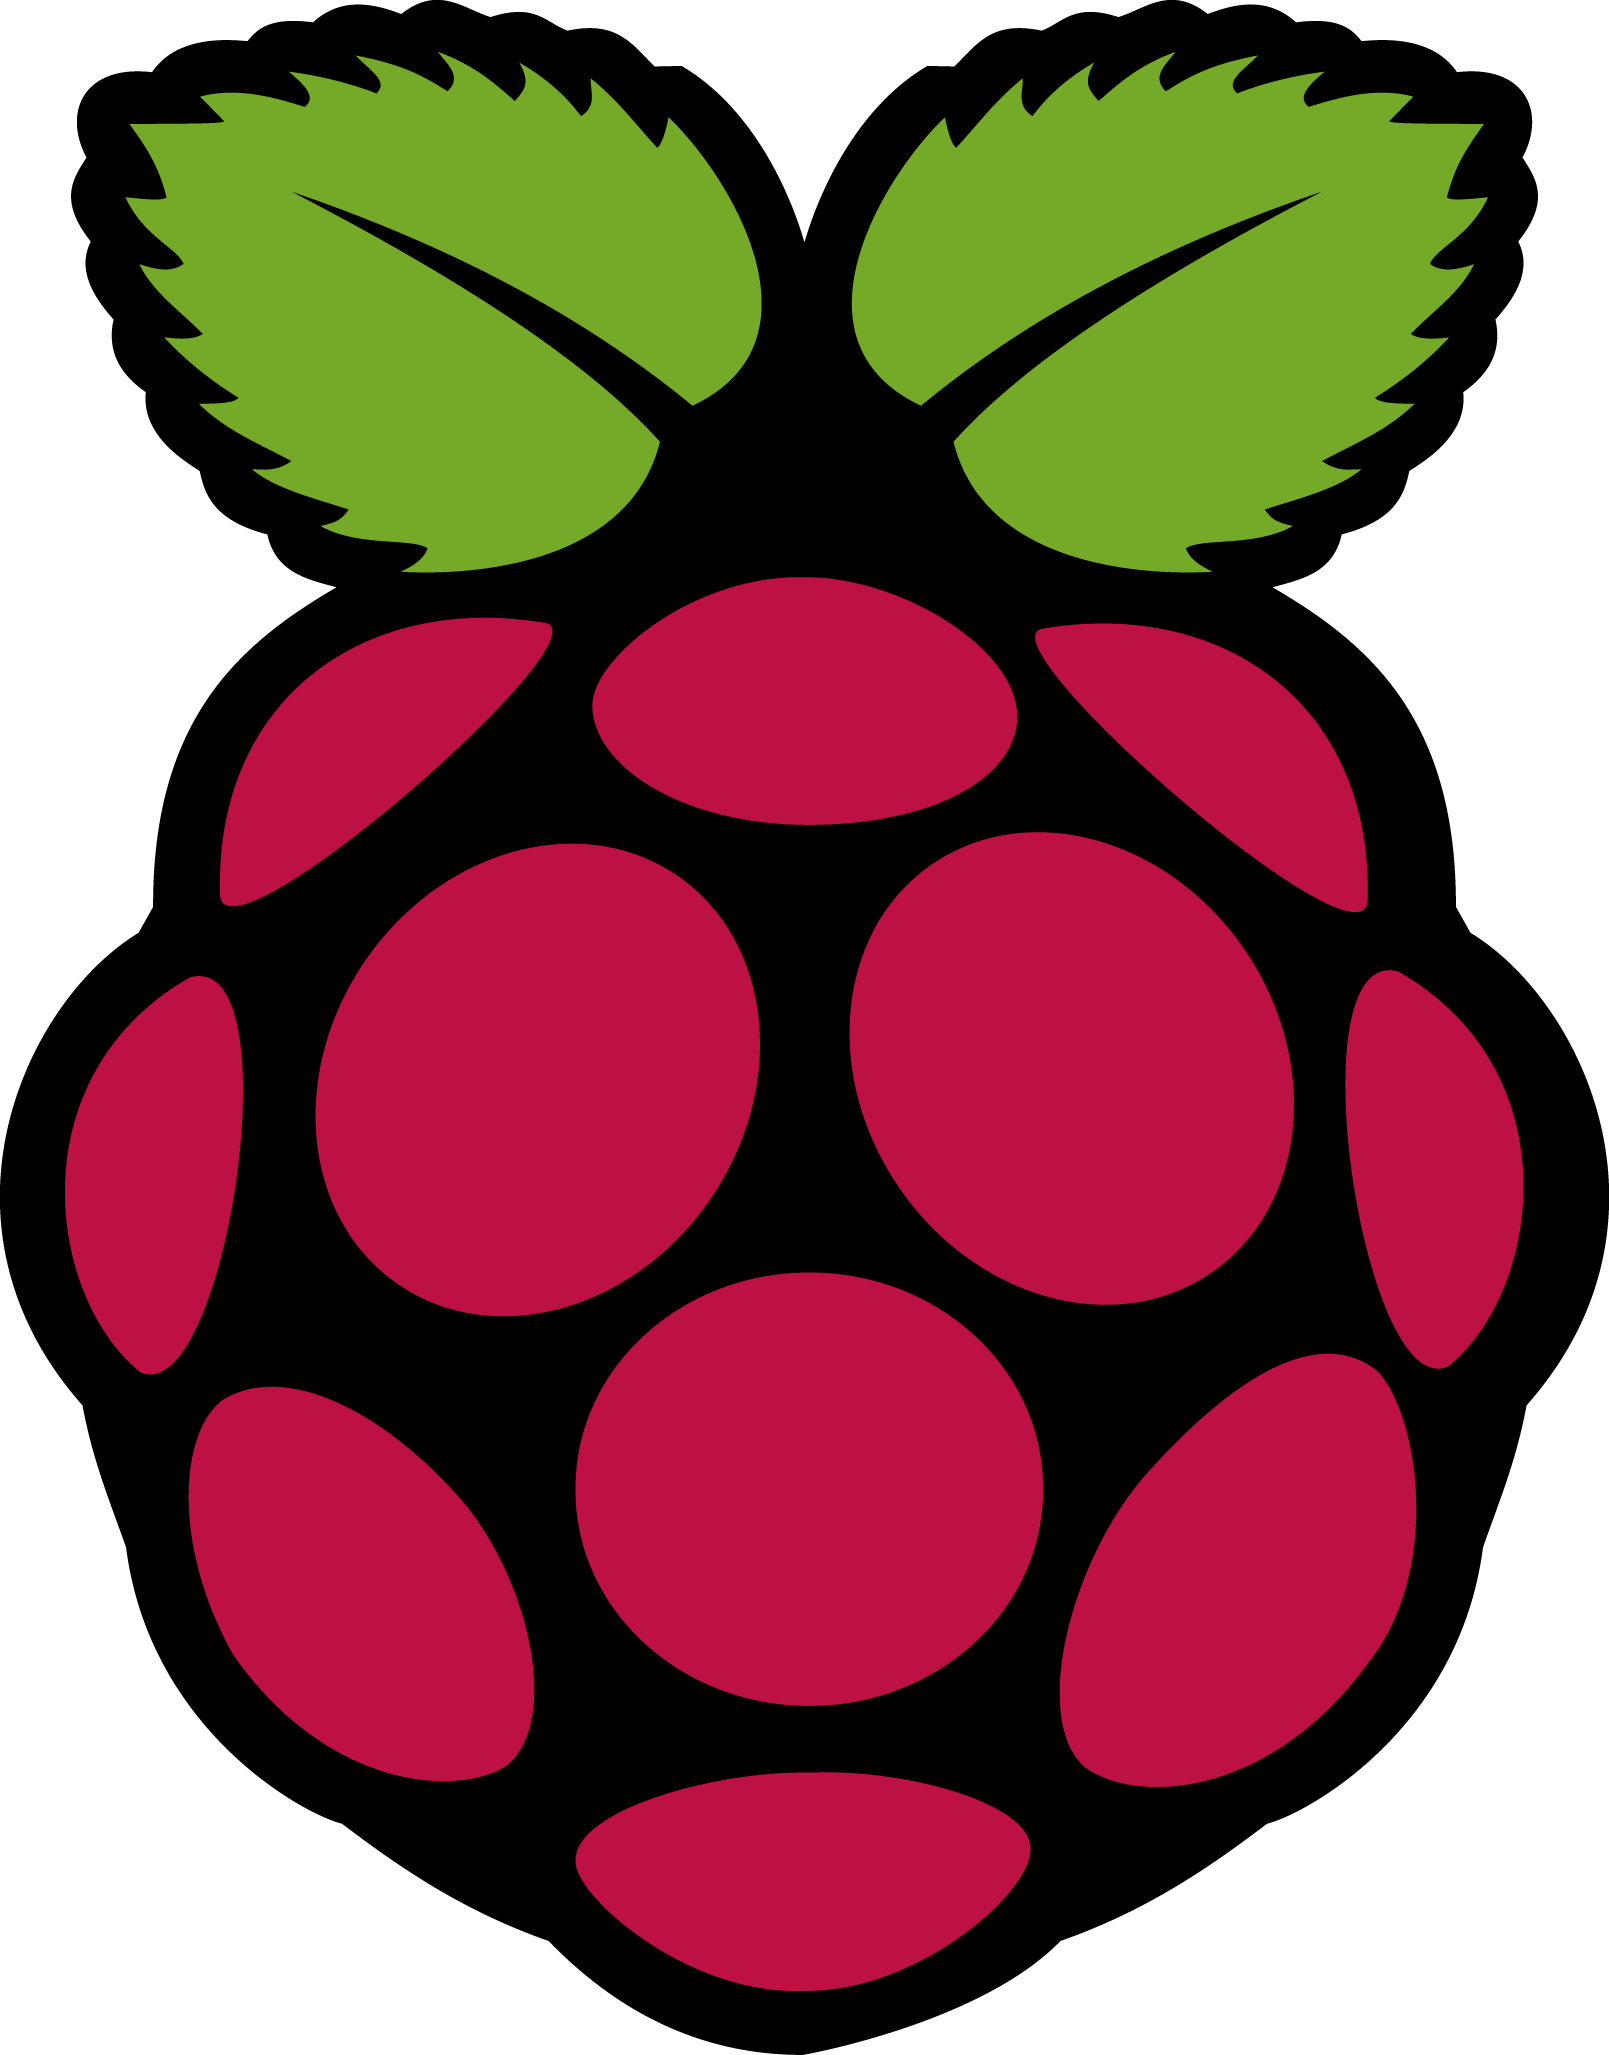 Raspberry at getdrawings com. Pie clipart svg